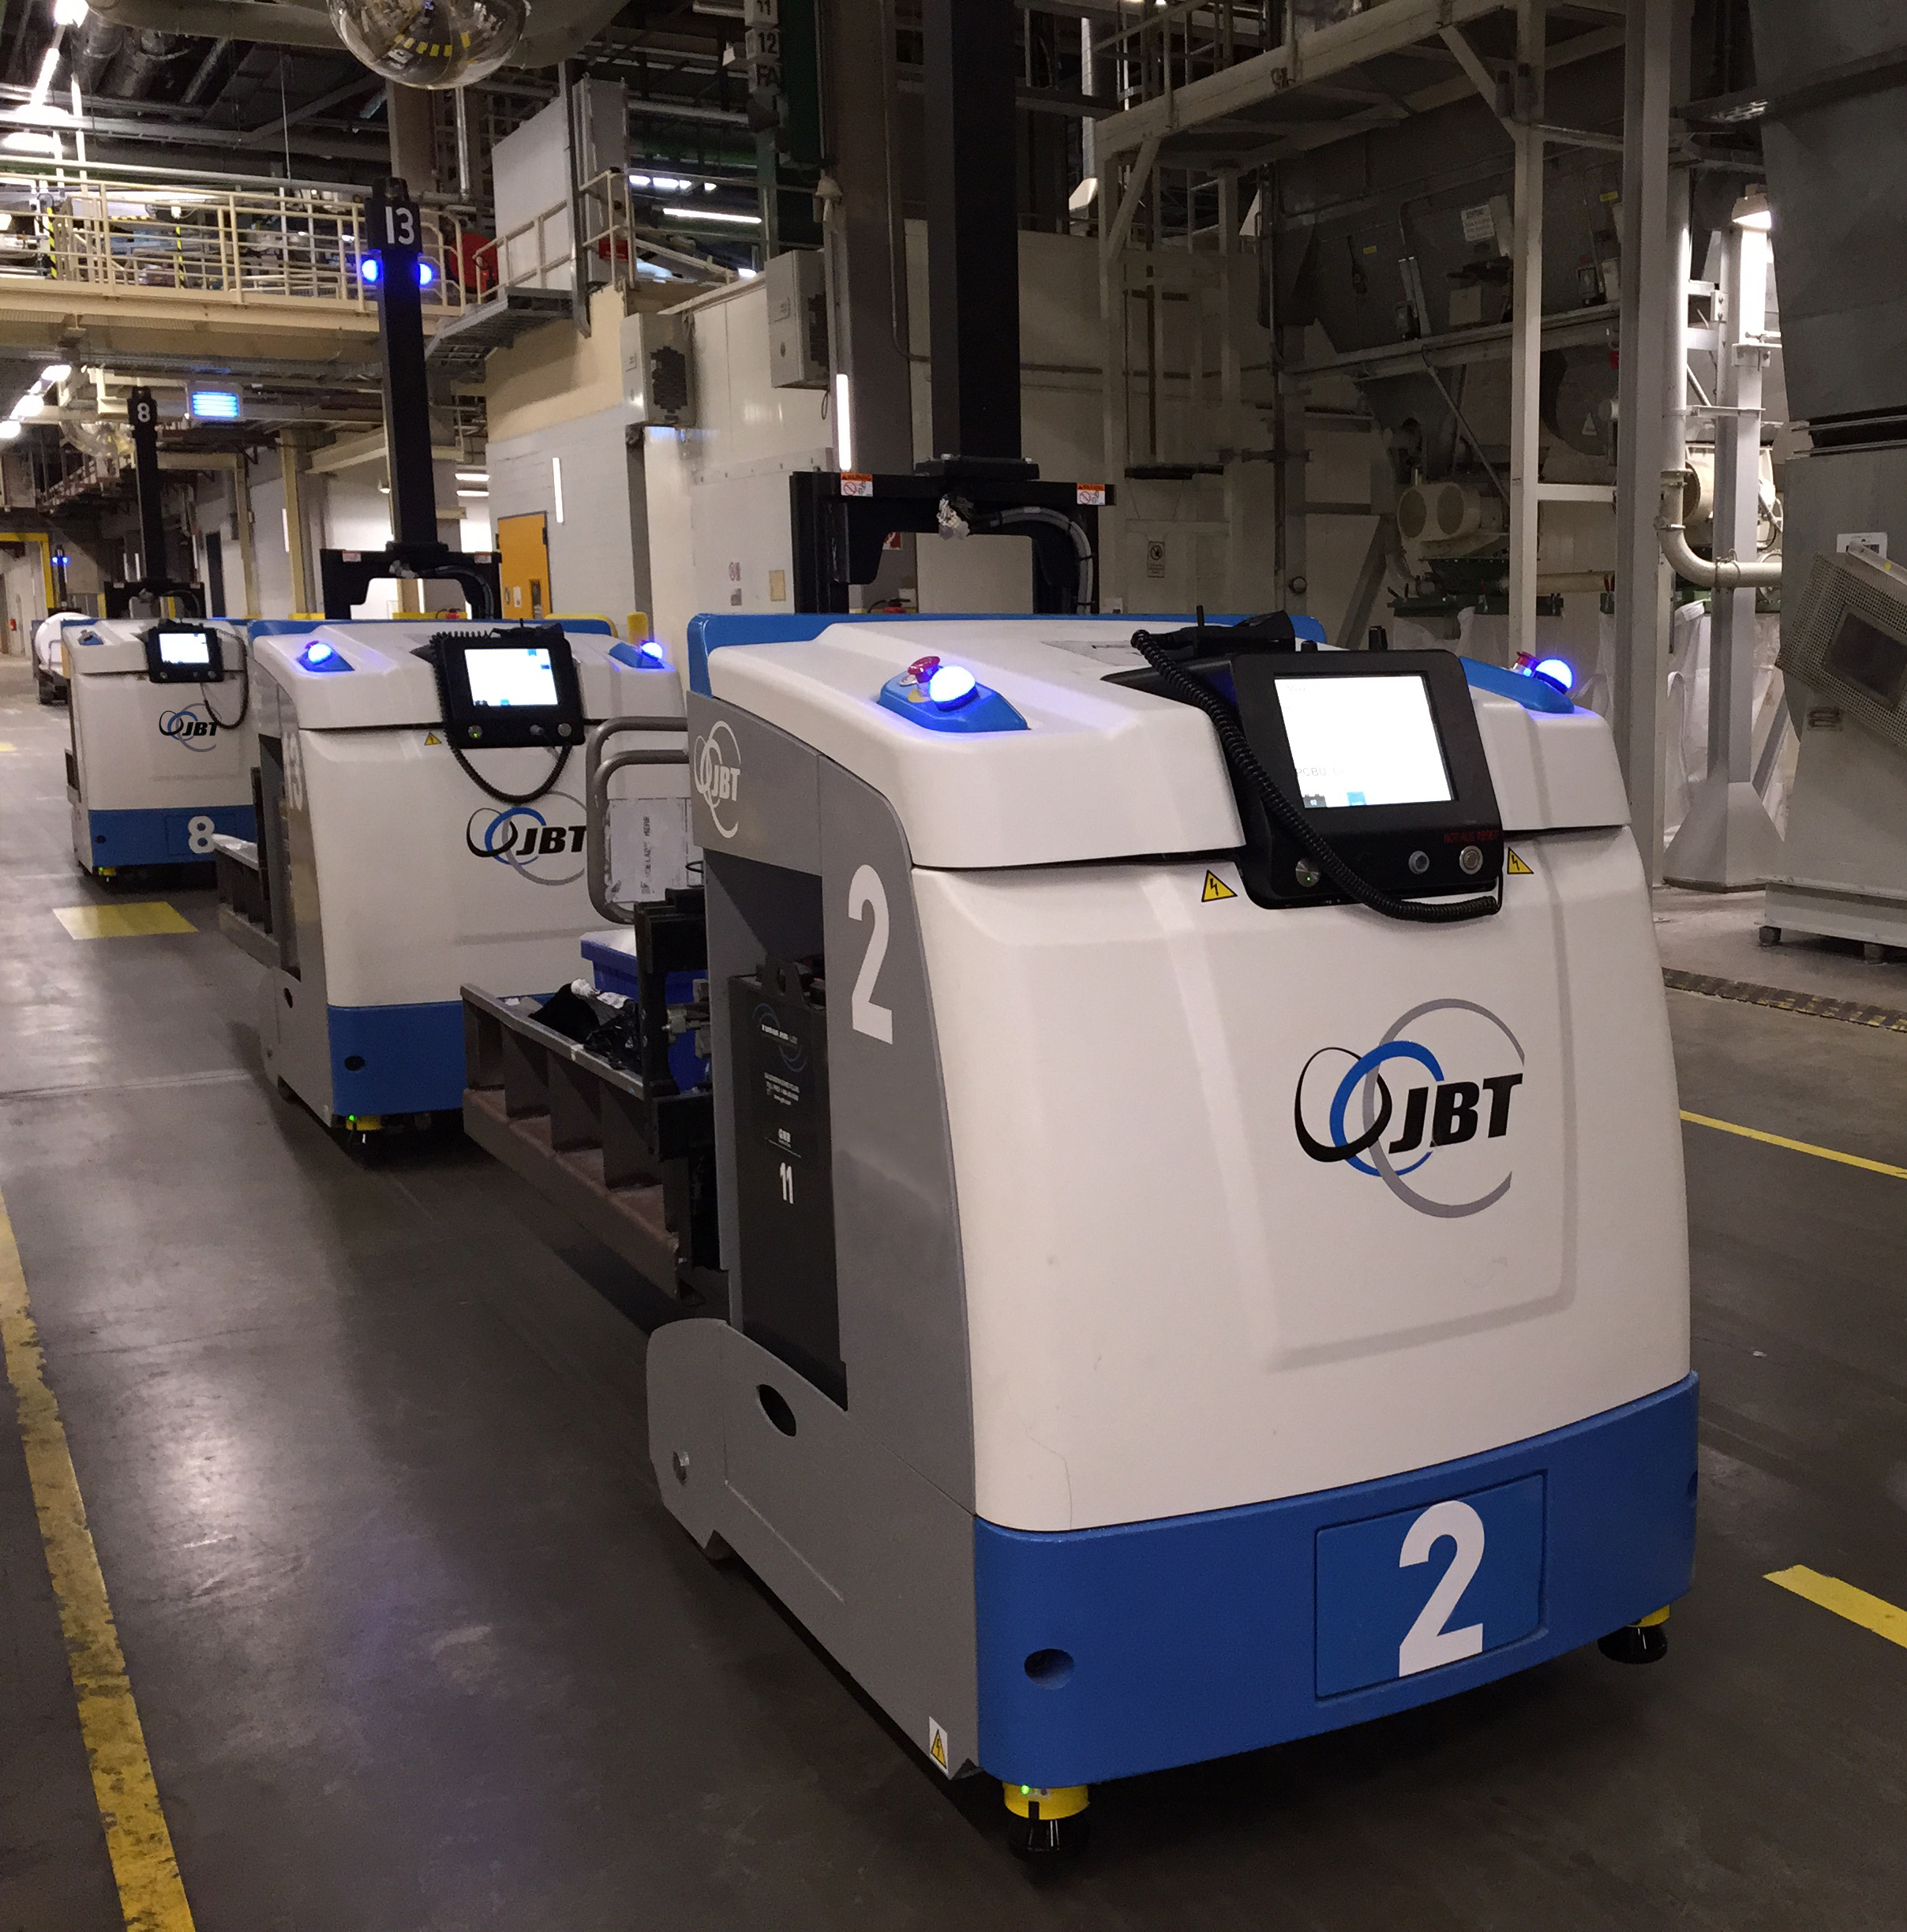 AGVs proliferate as warehouse automation grows in beverage